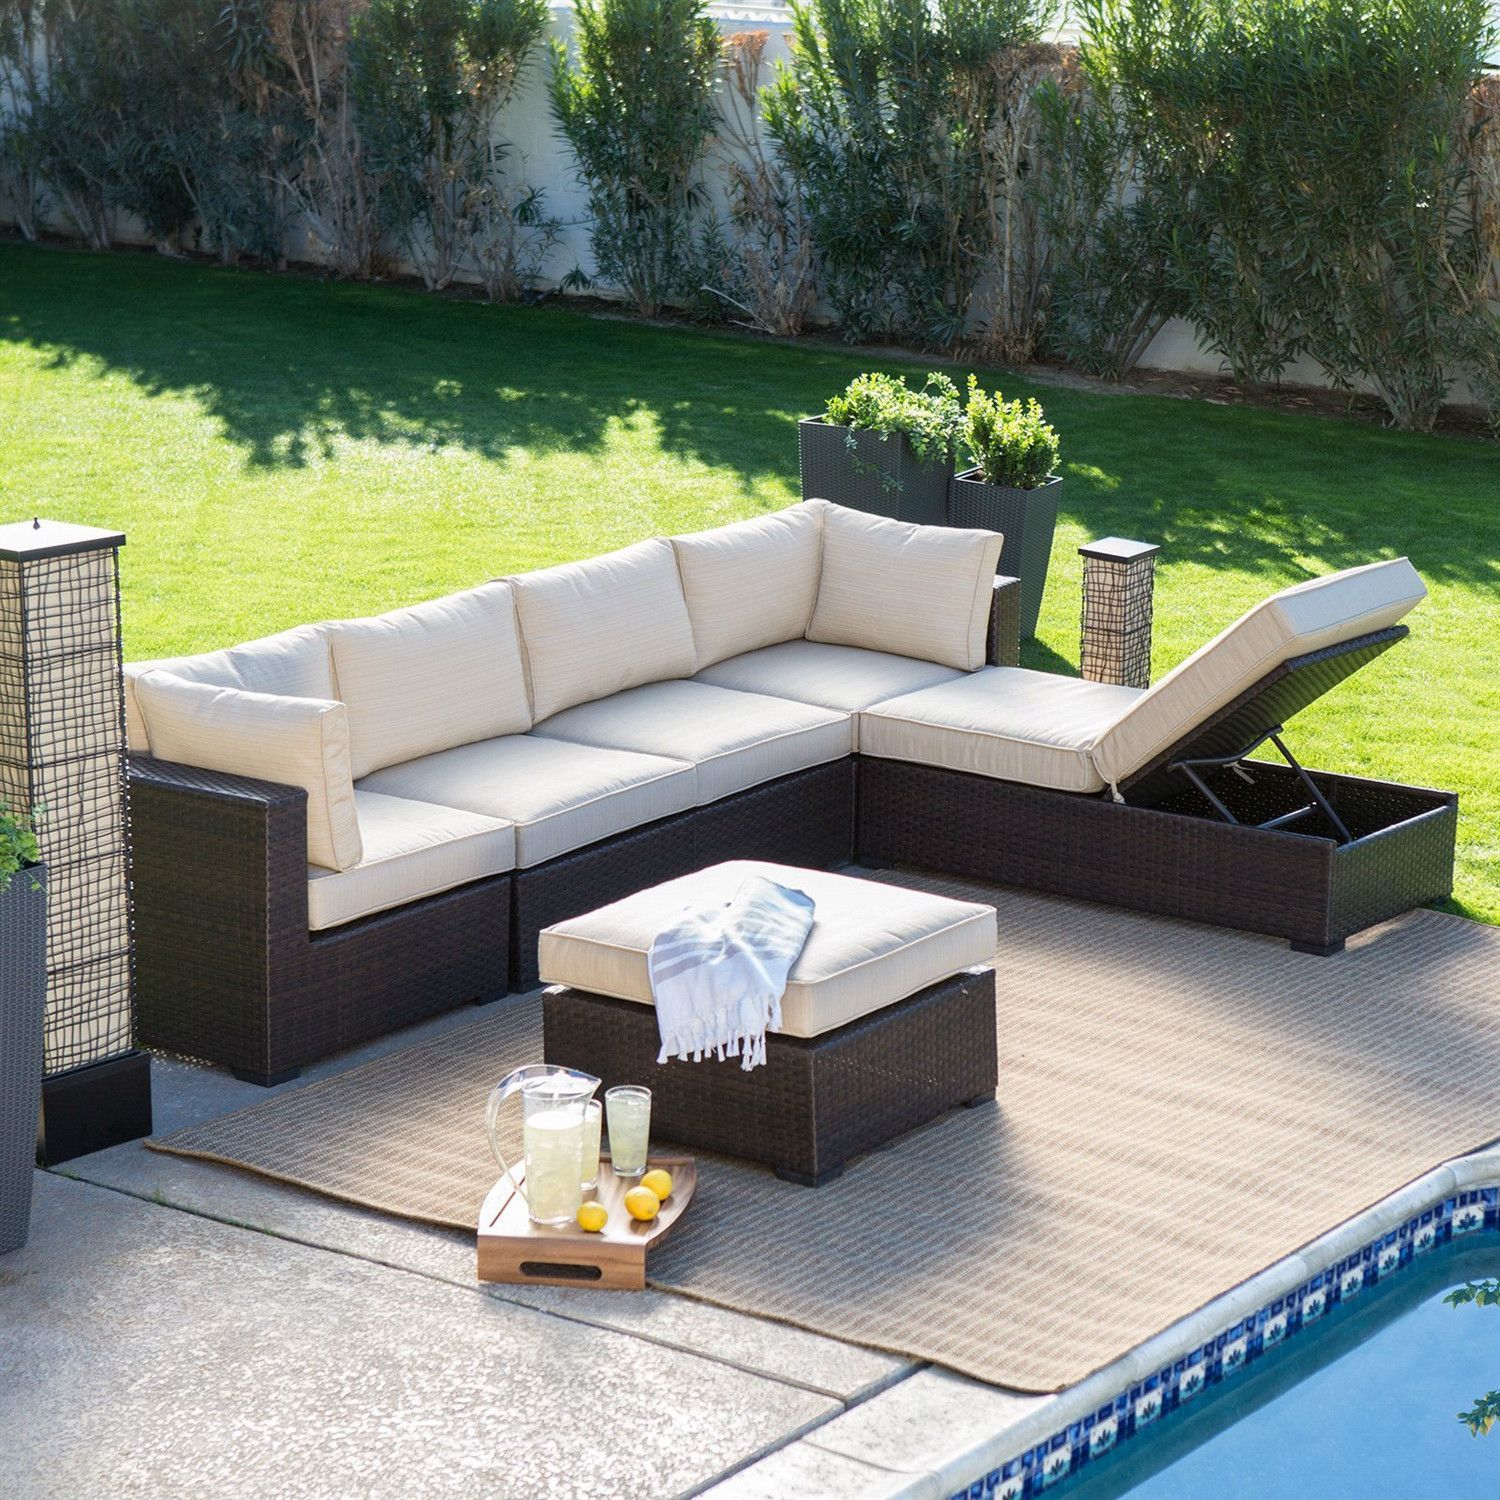 Outdoor Wicker Resin 6 Piece Sectional Sofa Patio Furniture